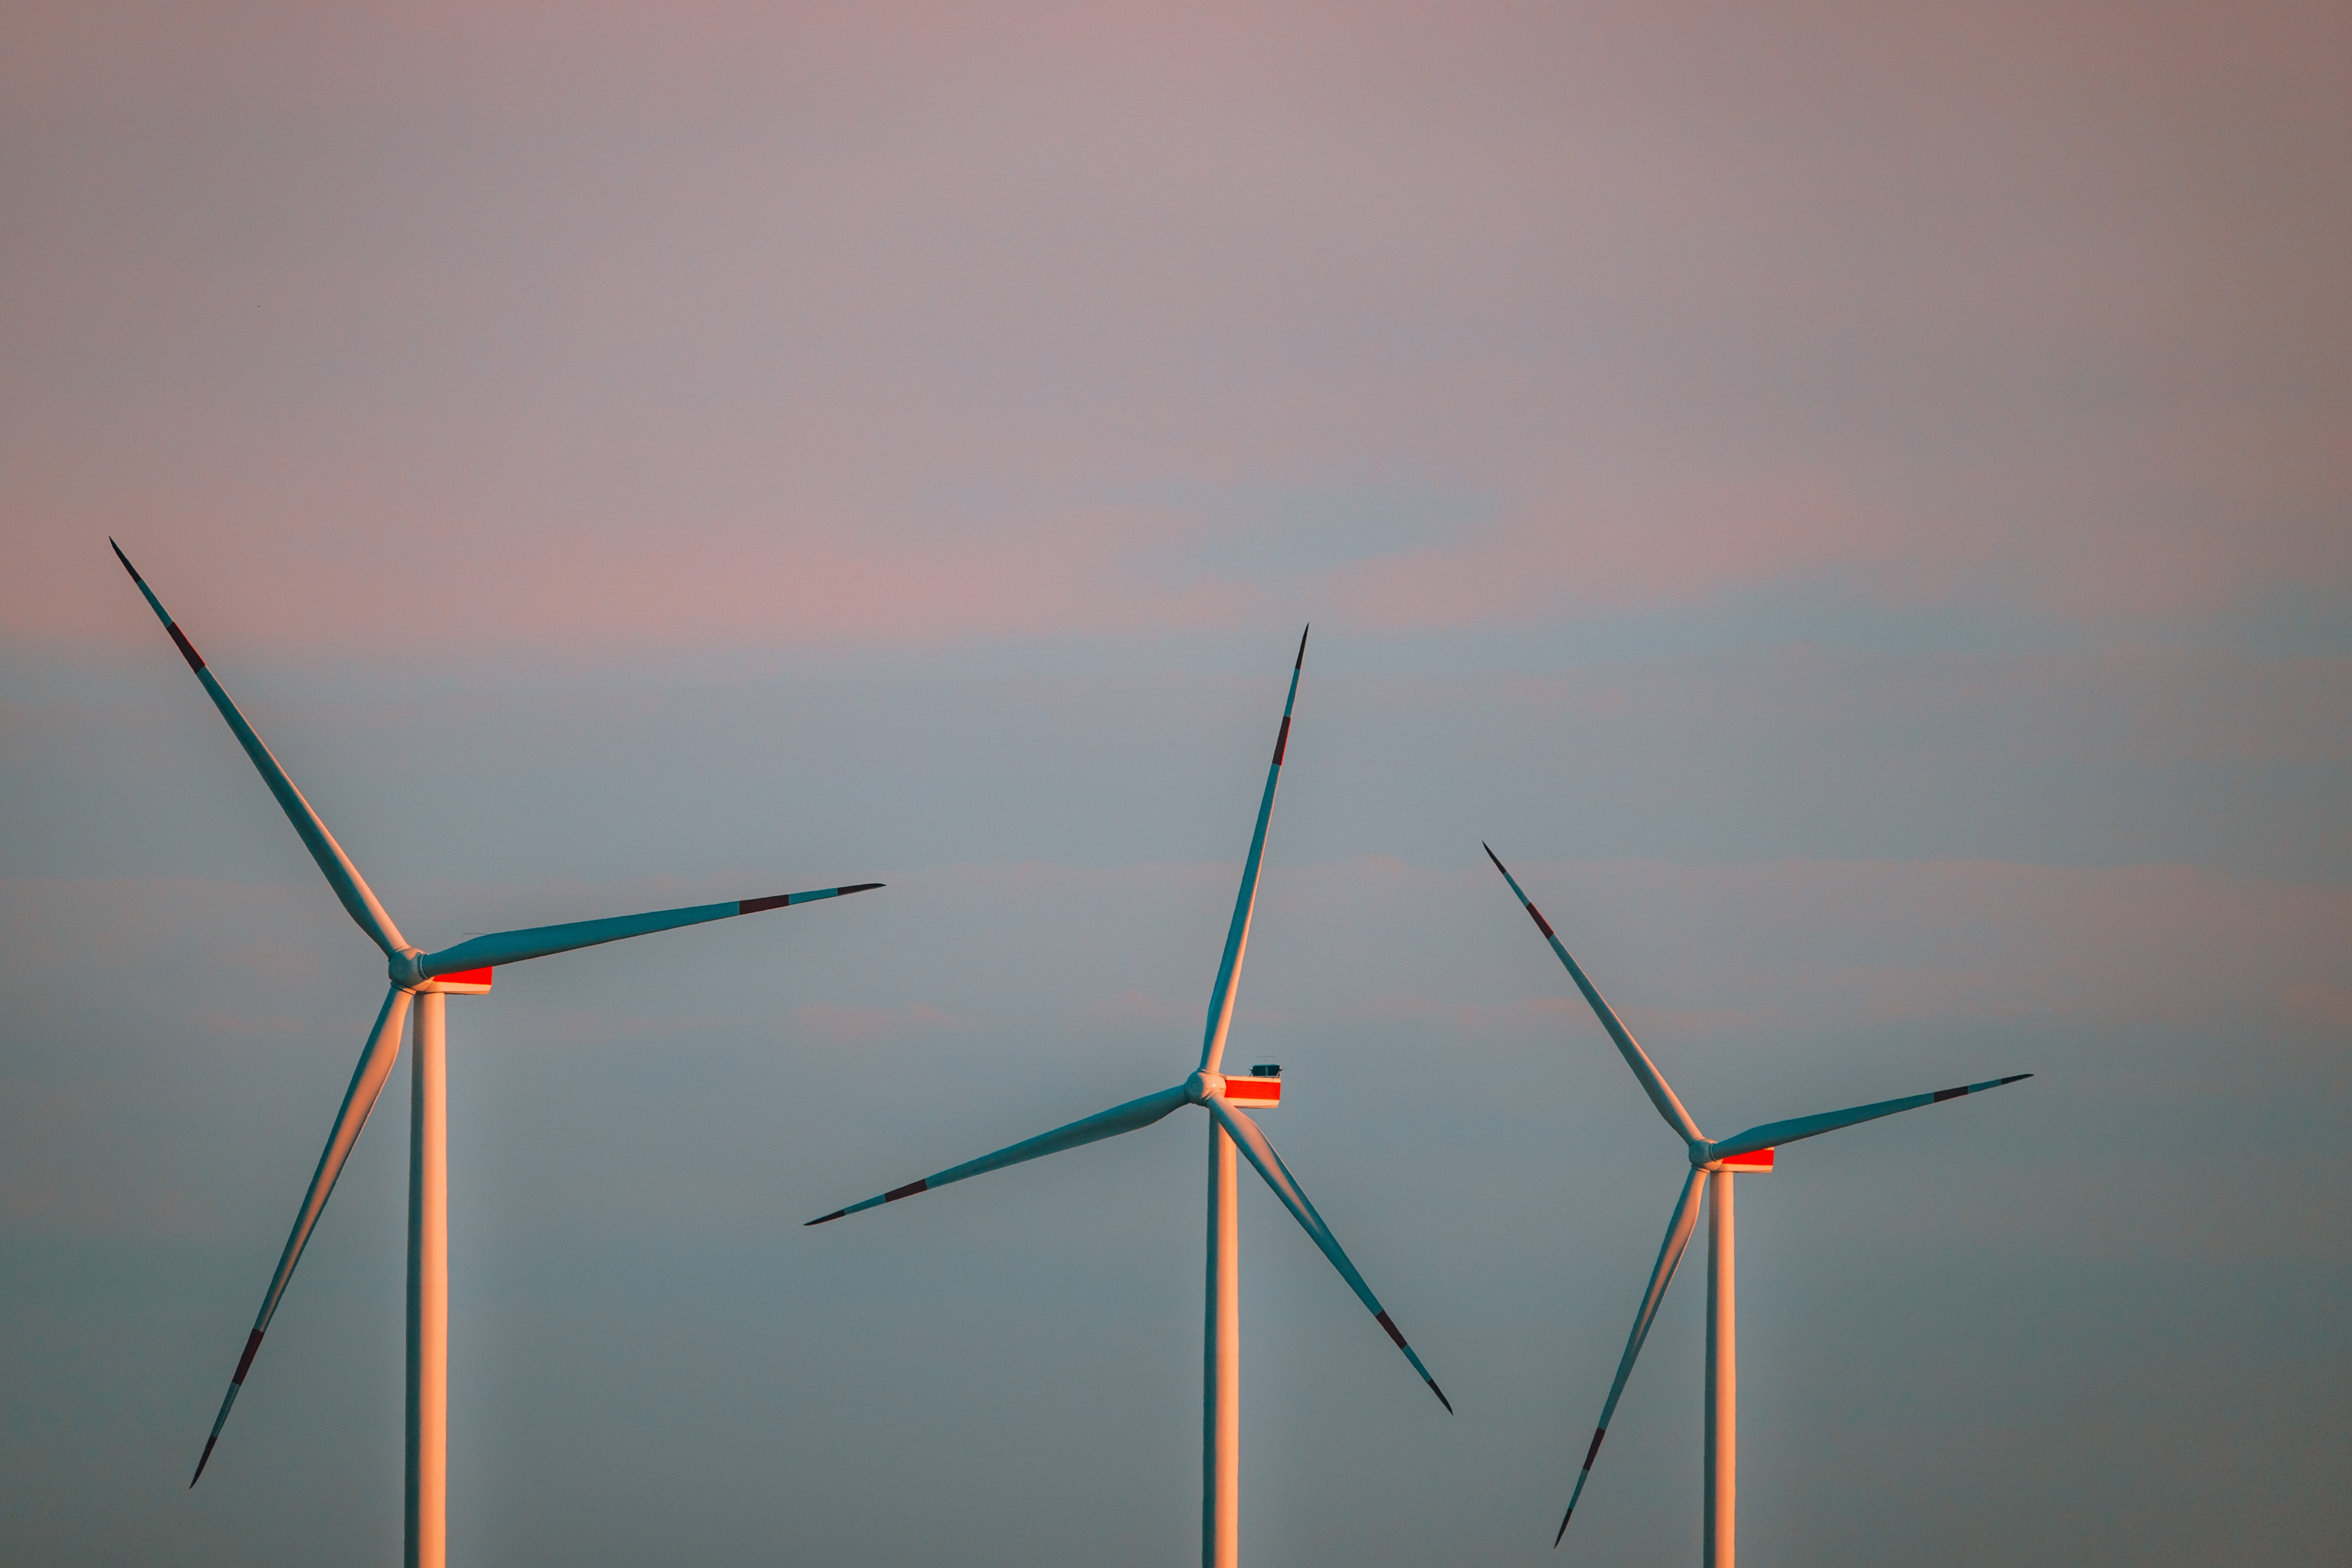 marcel-strauss-tr-dMQzXhI-unsplash-2 Renewable power, a good opportunity to encourage the global economic recovery